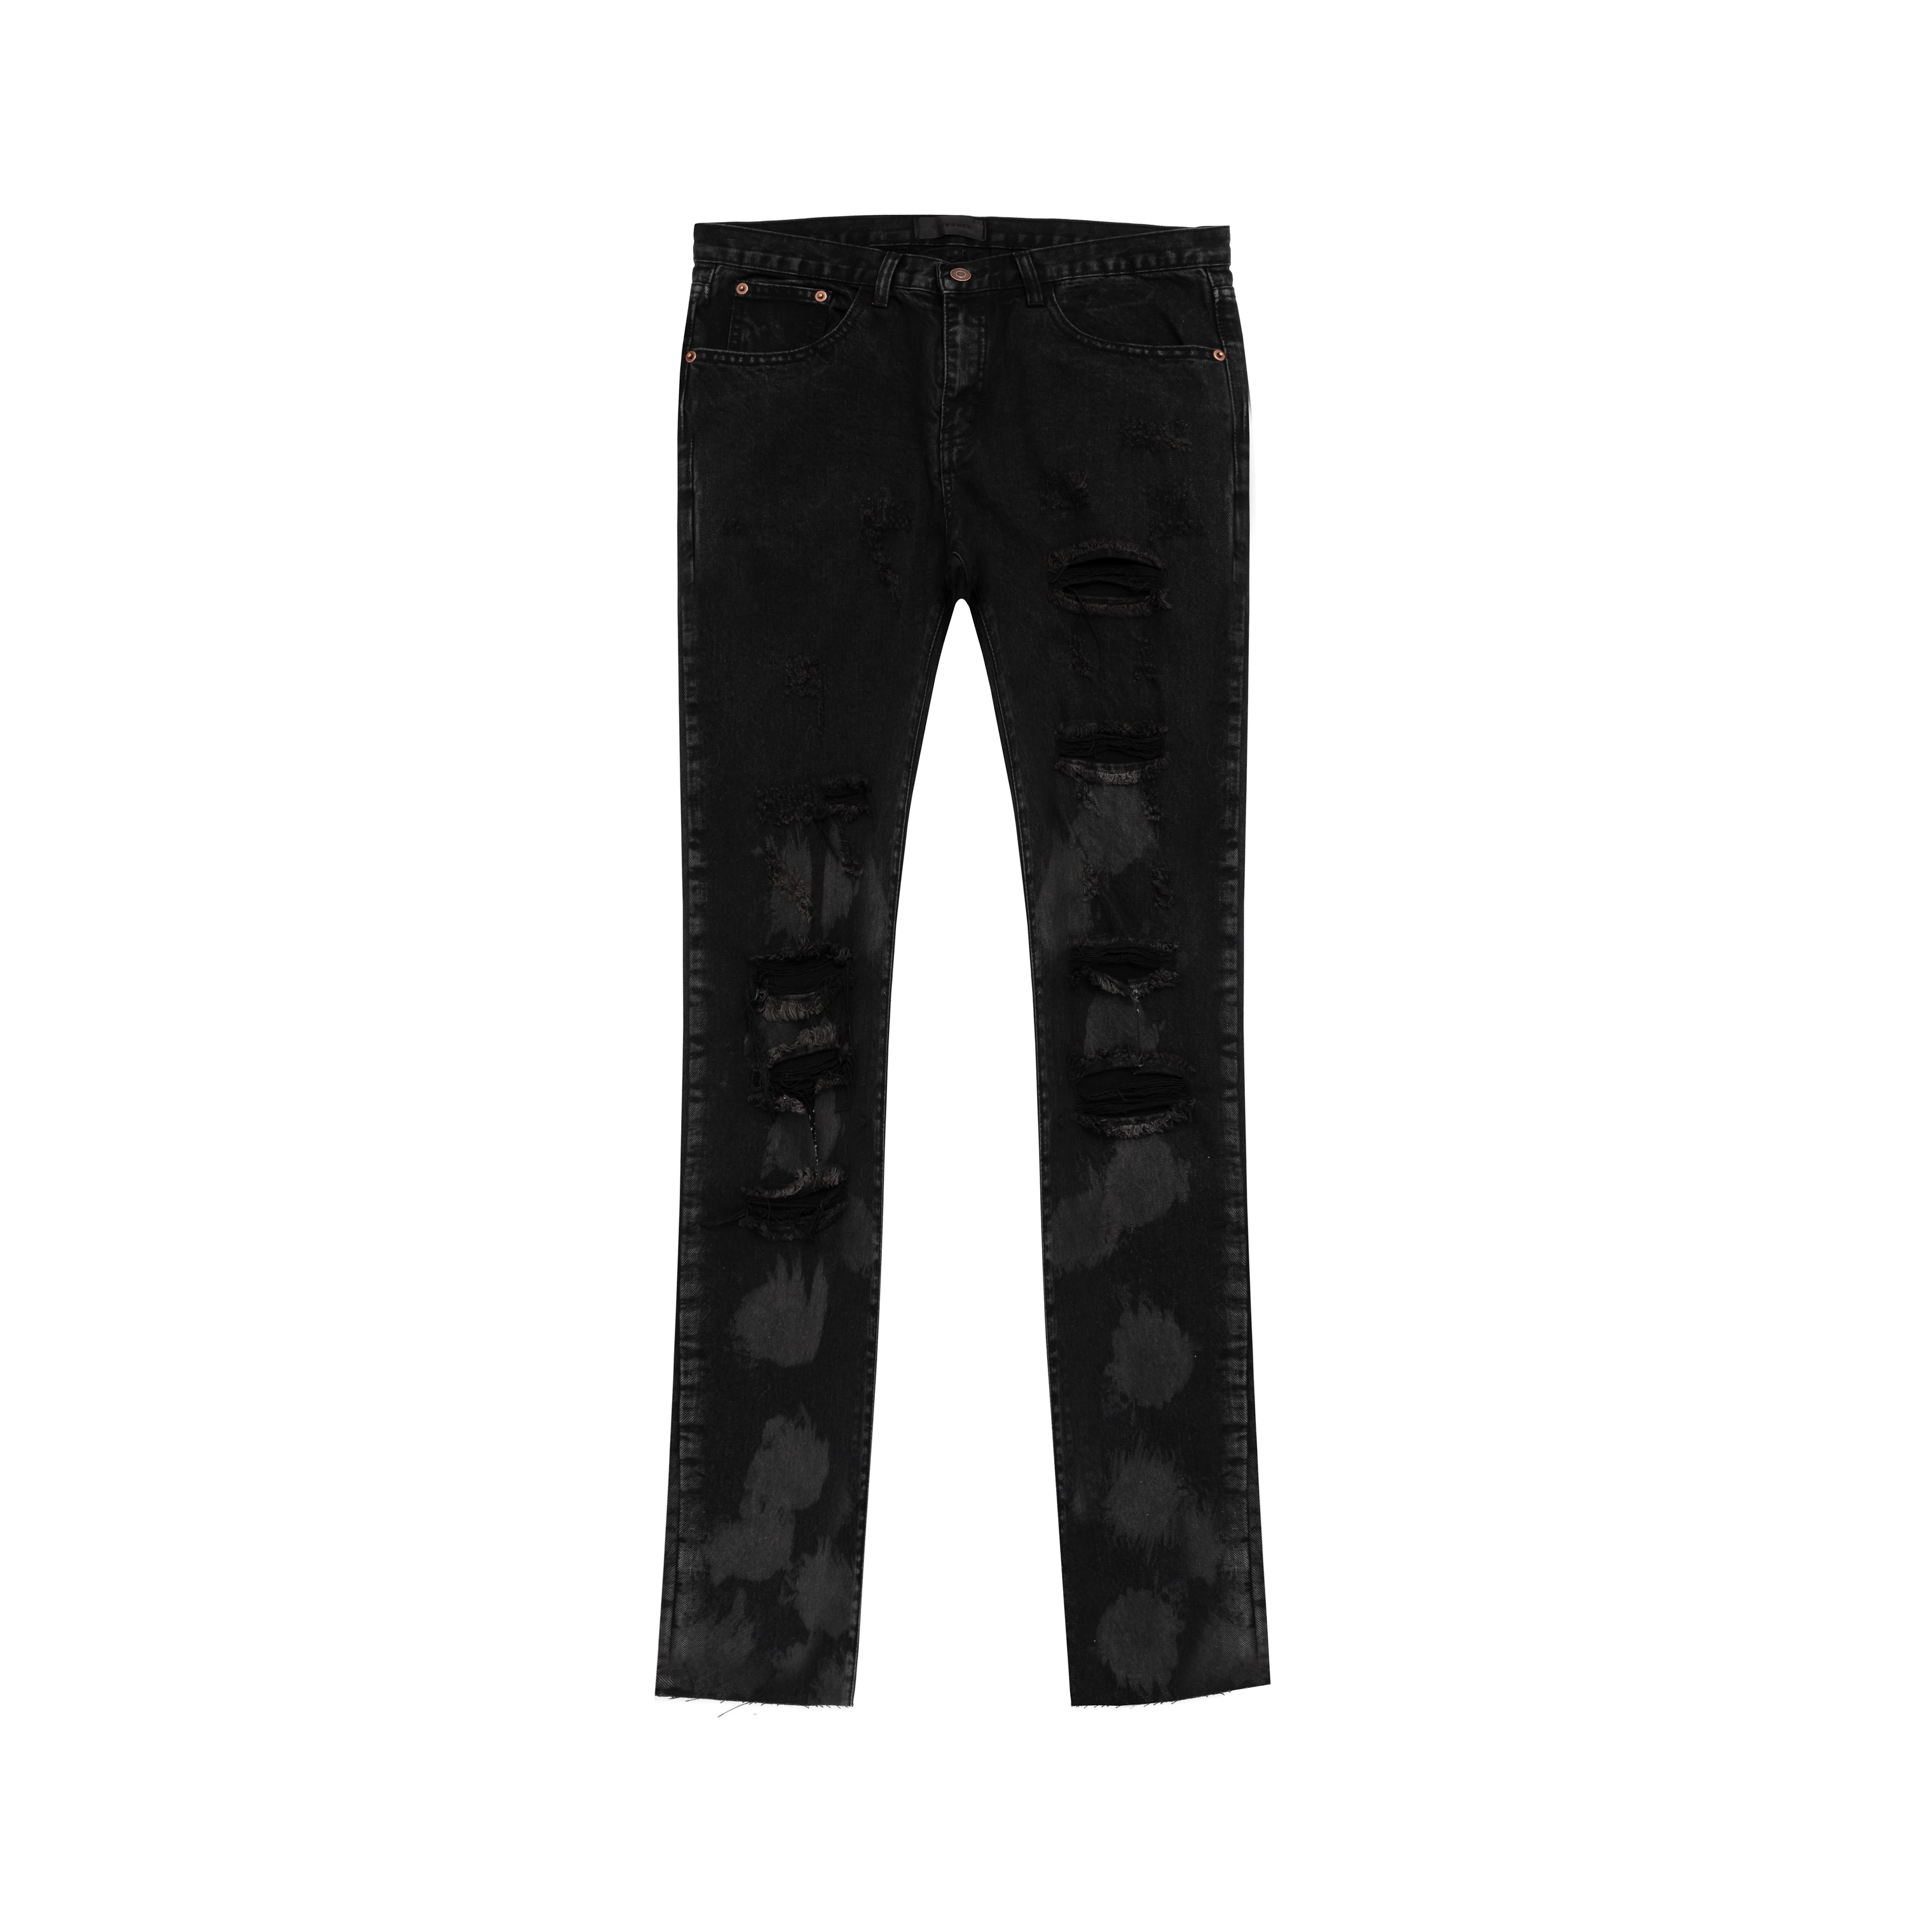 Stained Black Skinny-Fit Distressed Denim Jeans